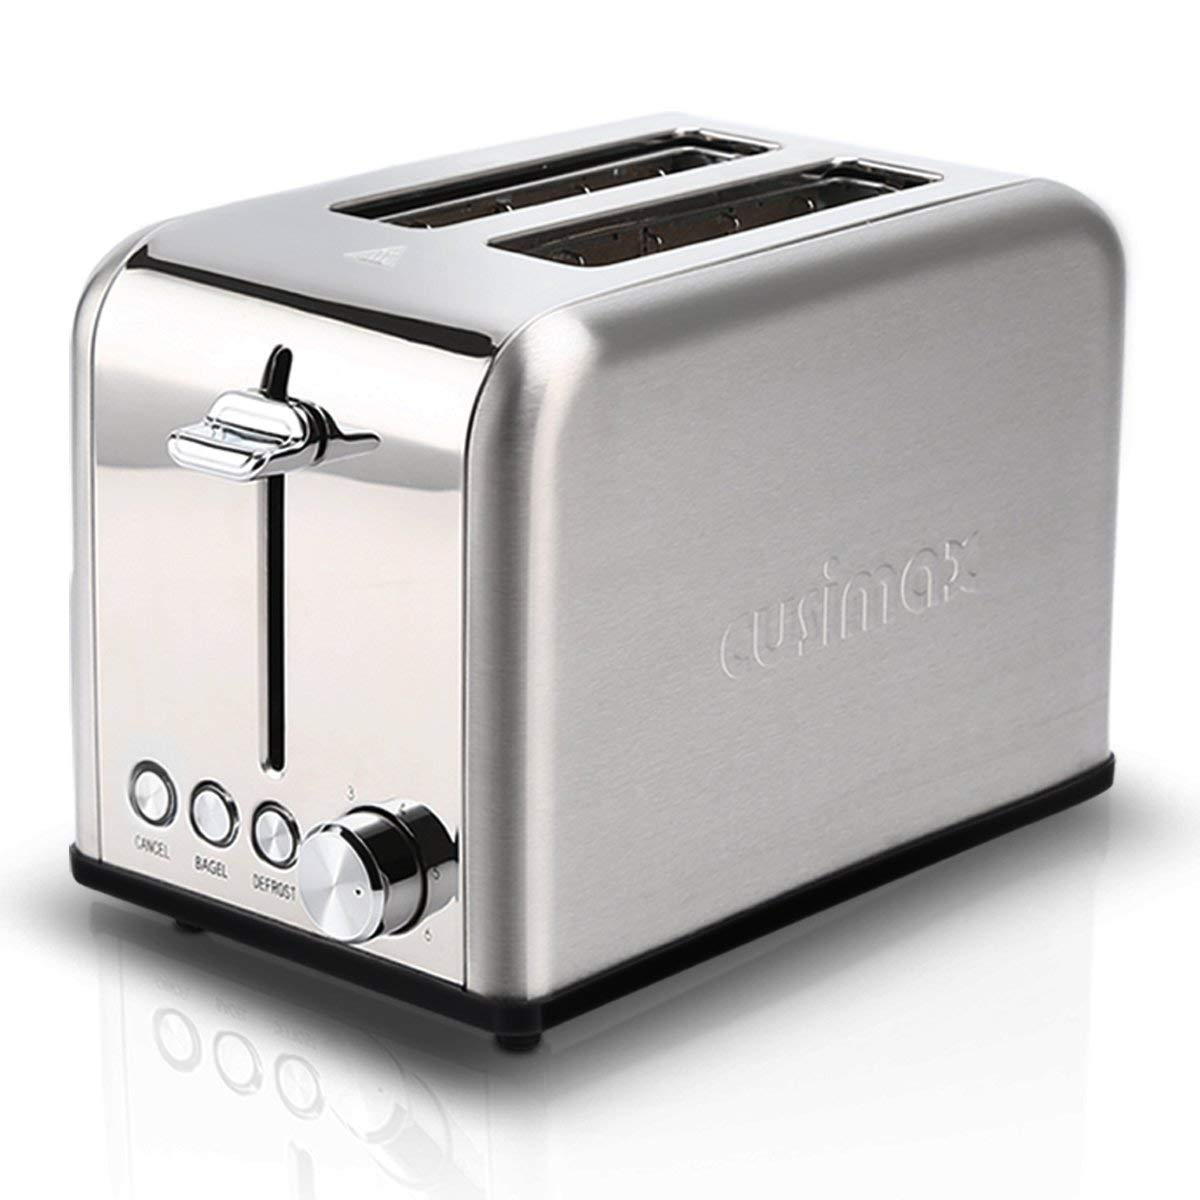 Cusimax Toaster 2 Slice, Extra Wide Slot Toaster with BAGEL/DEFROST/CANCEL Function, Bread Toaster, Stainless Steel Small Bagel Toaster, Compact Two Slice Toaster 6 Shade Settings